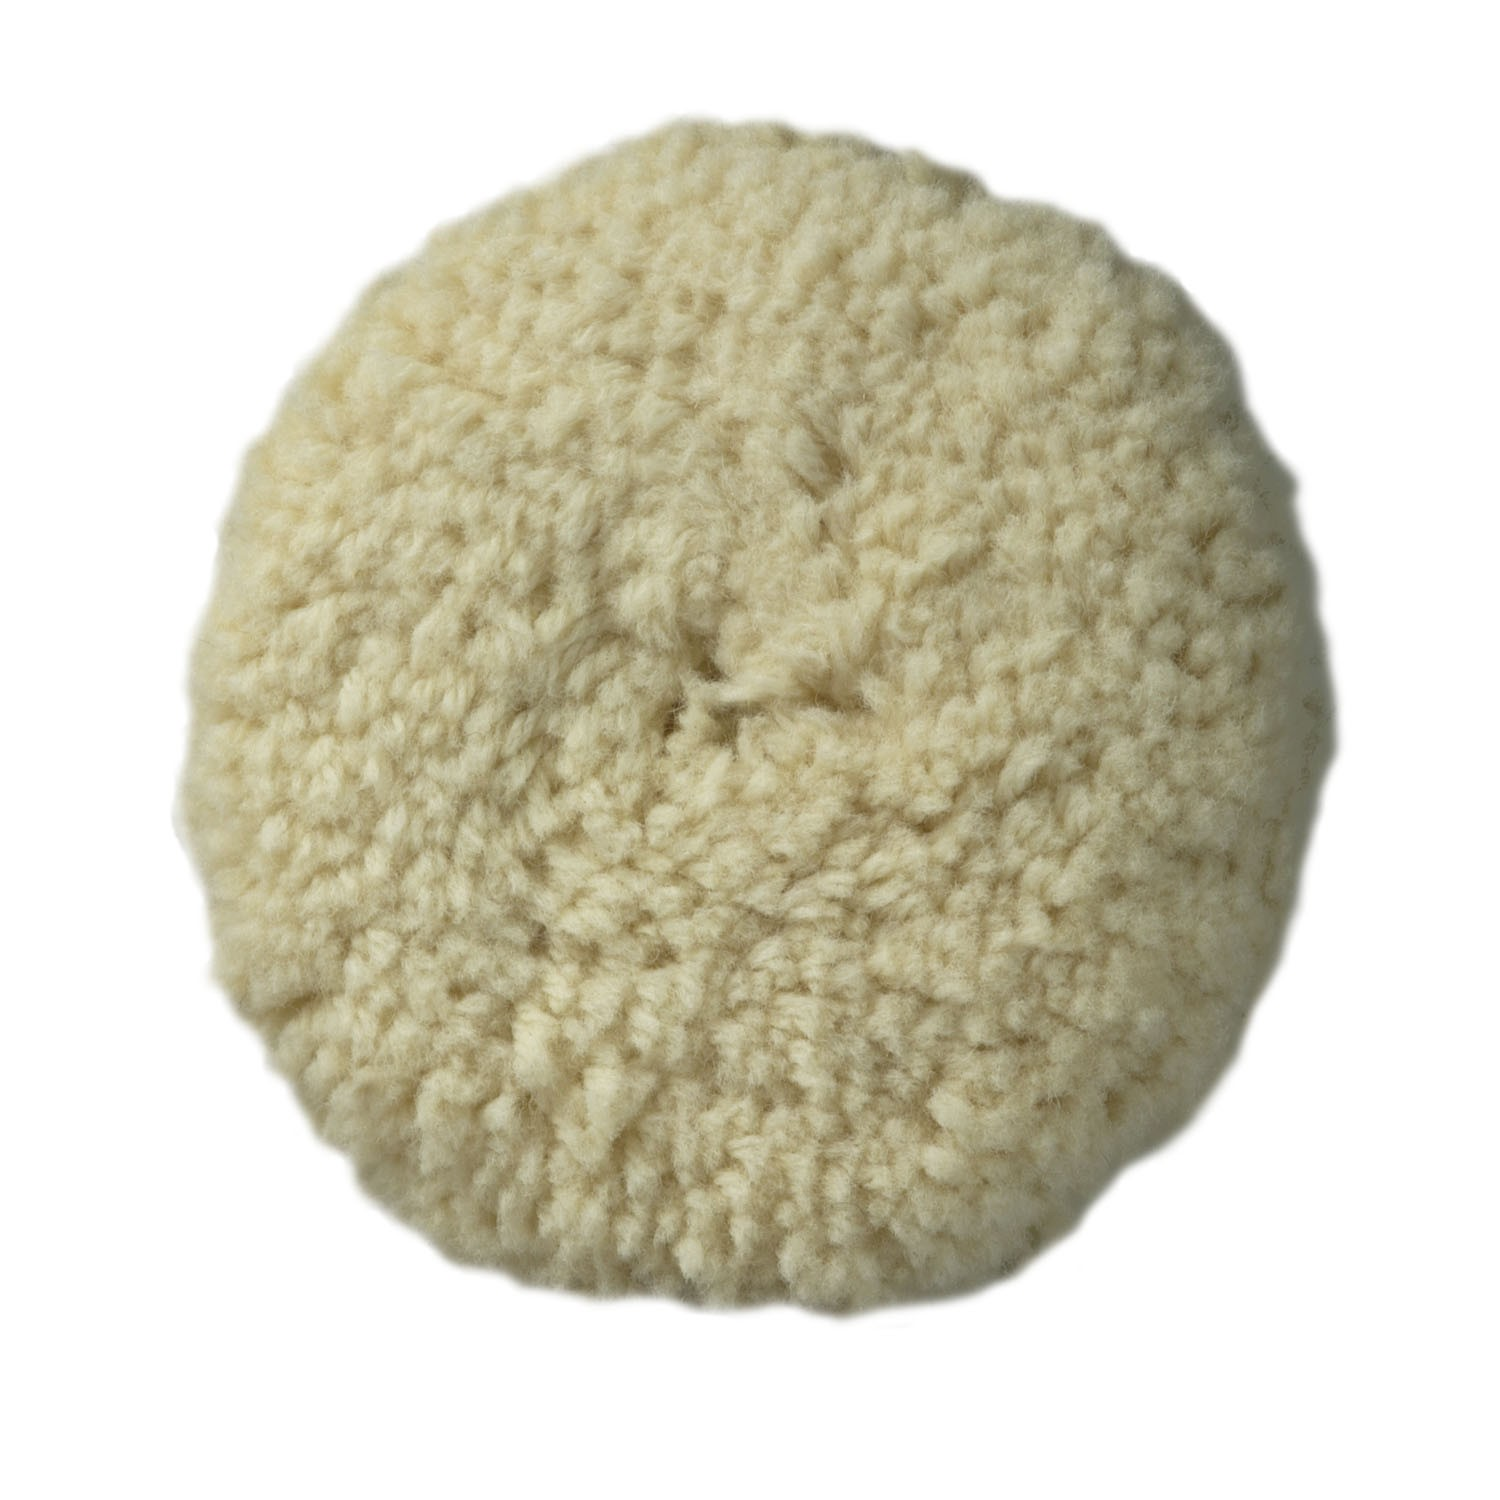 Buf puf singles Buf-Puf - Buf-Puf Singles, Facial Sponges with Cleanser, Normal to Oily Skin - Product Details